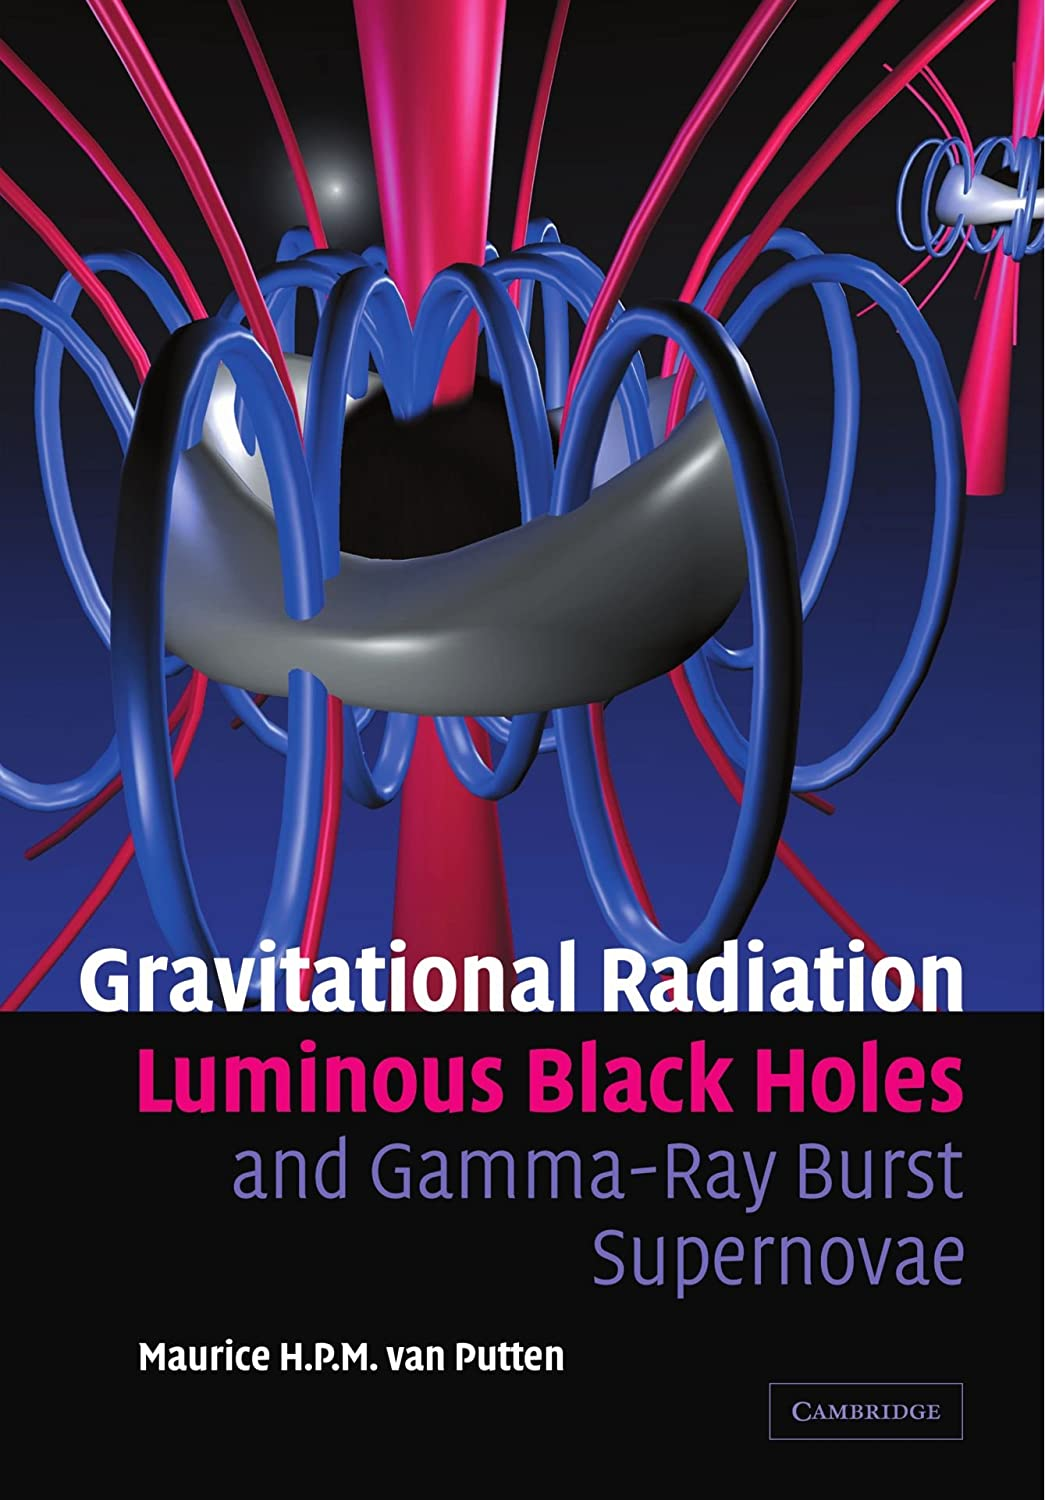 Gravitational radiation, luminous black holes and gamma-ray burst supernovae Maurice H. P. M. Van Putten